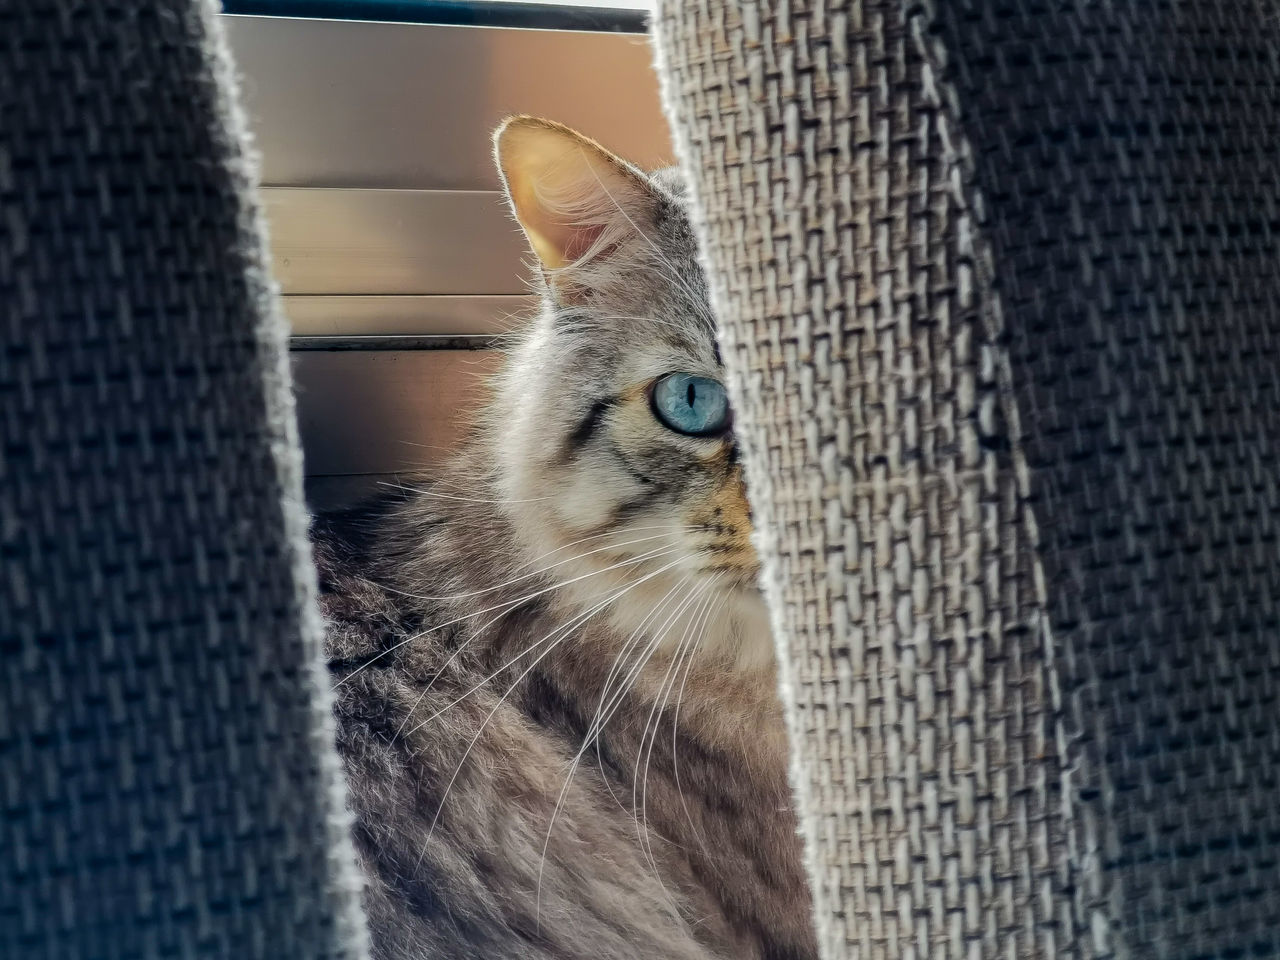 CLOSE-UP PORTRAIT OF A CAT LOOKING THROUGH WINDOW